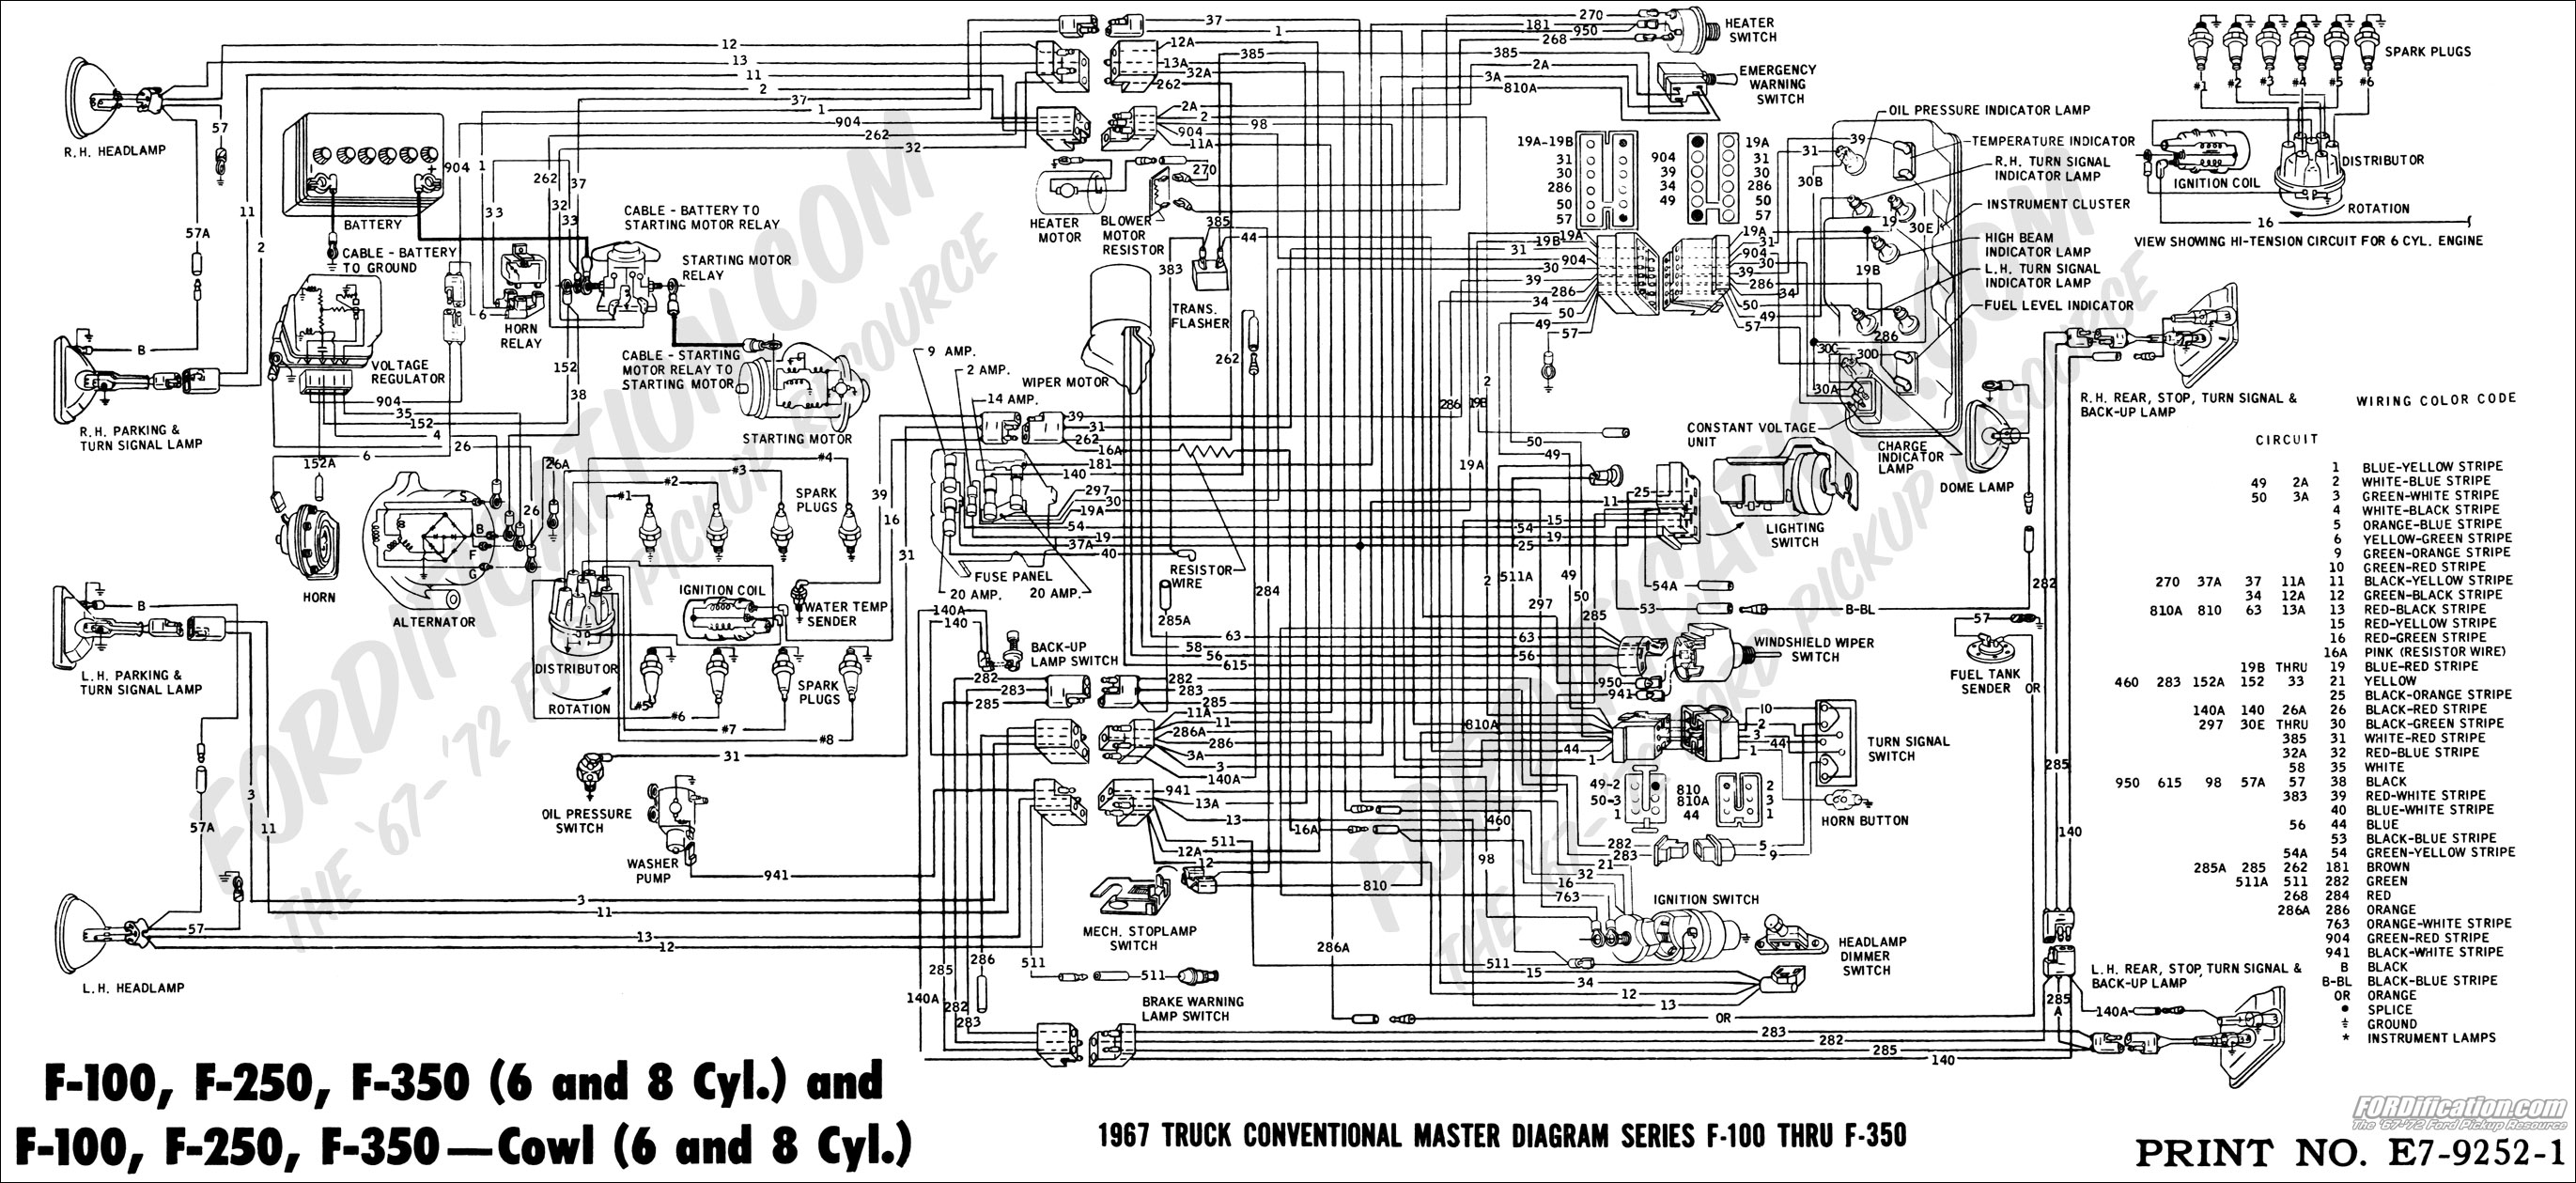 67masterdiagram ford truck technical drawings and schematics section h wiring 1963 Ford Econoline Truck Diagram at bakdesigns.co